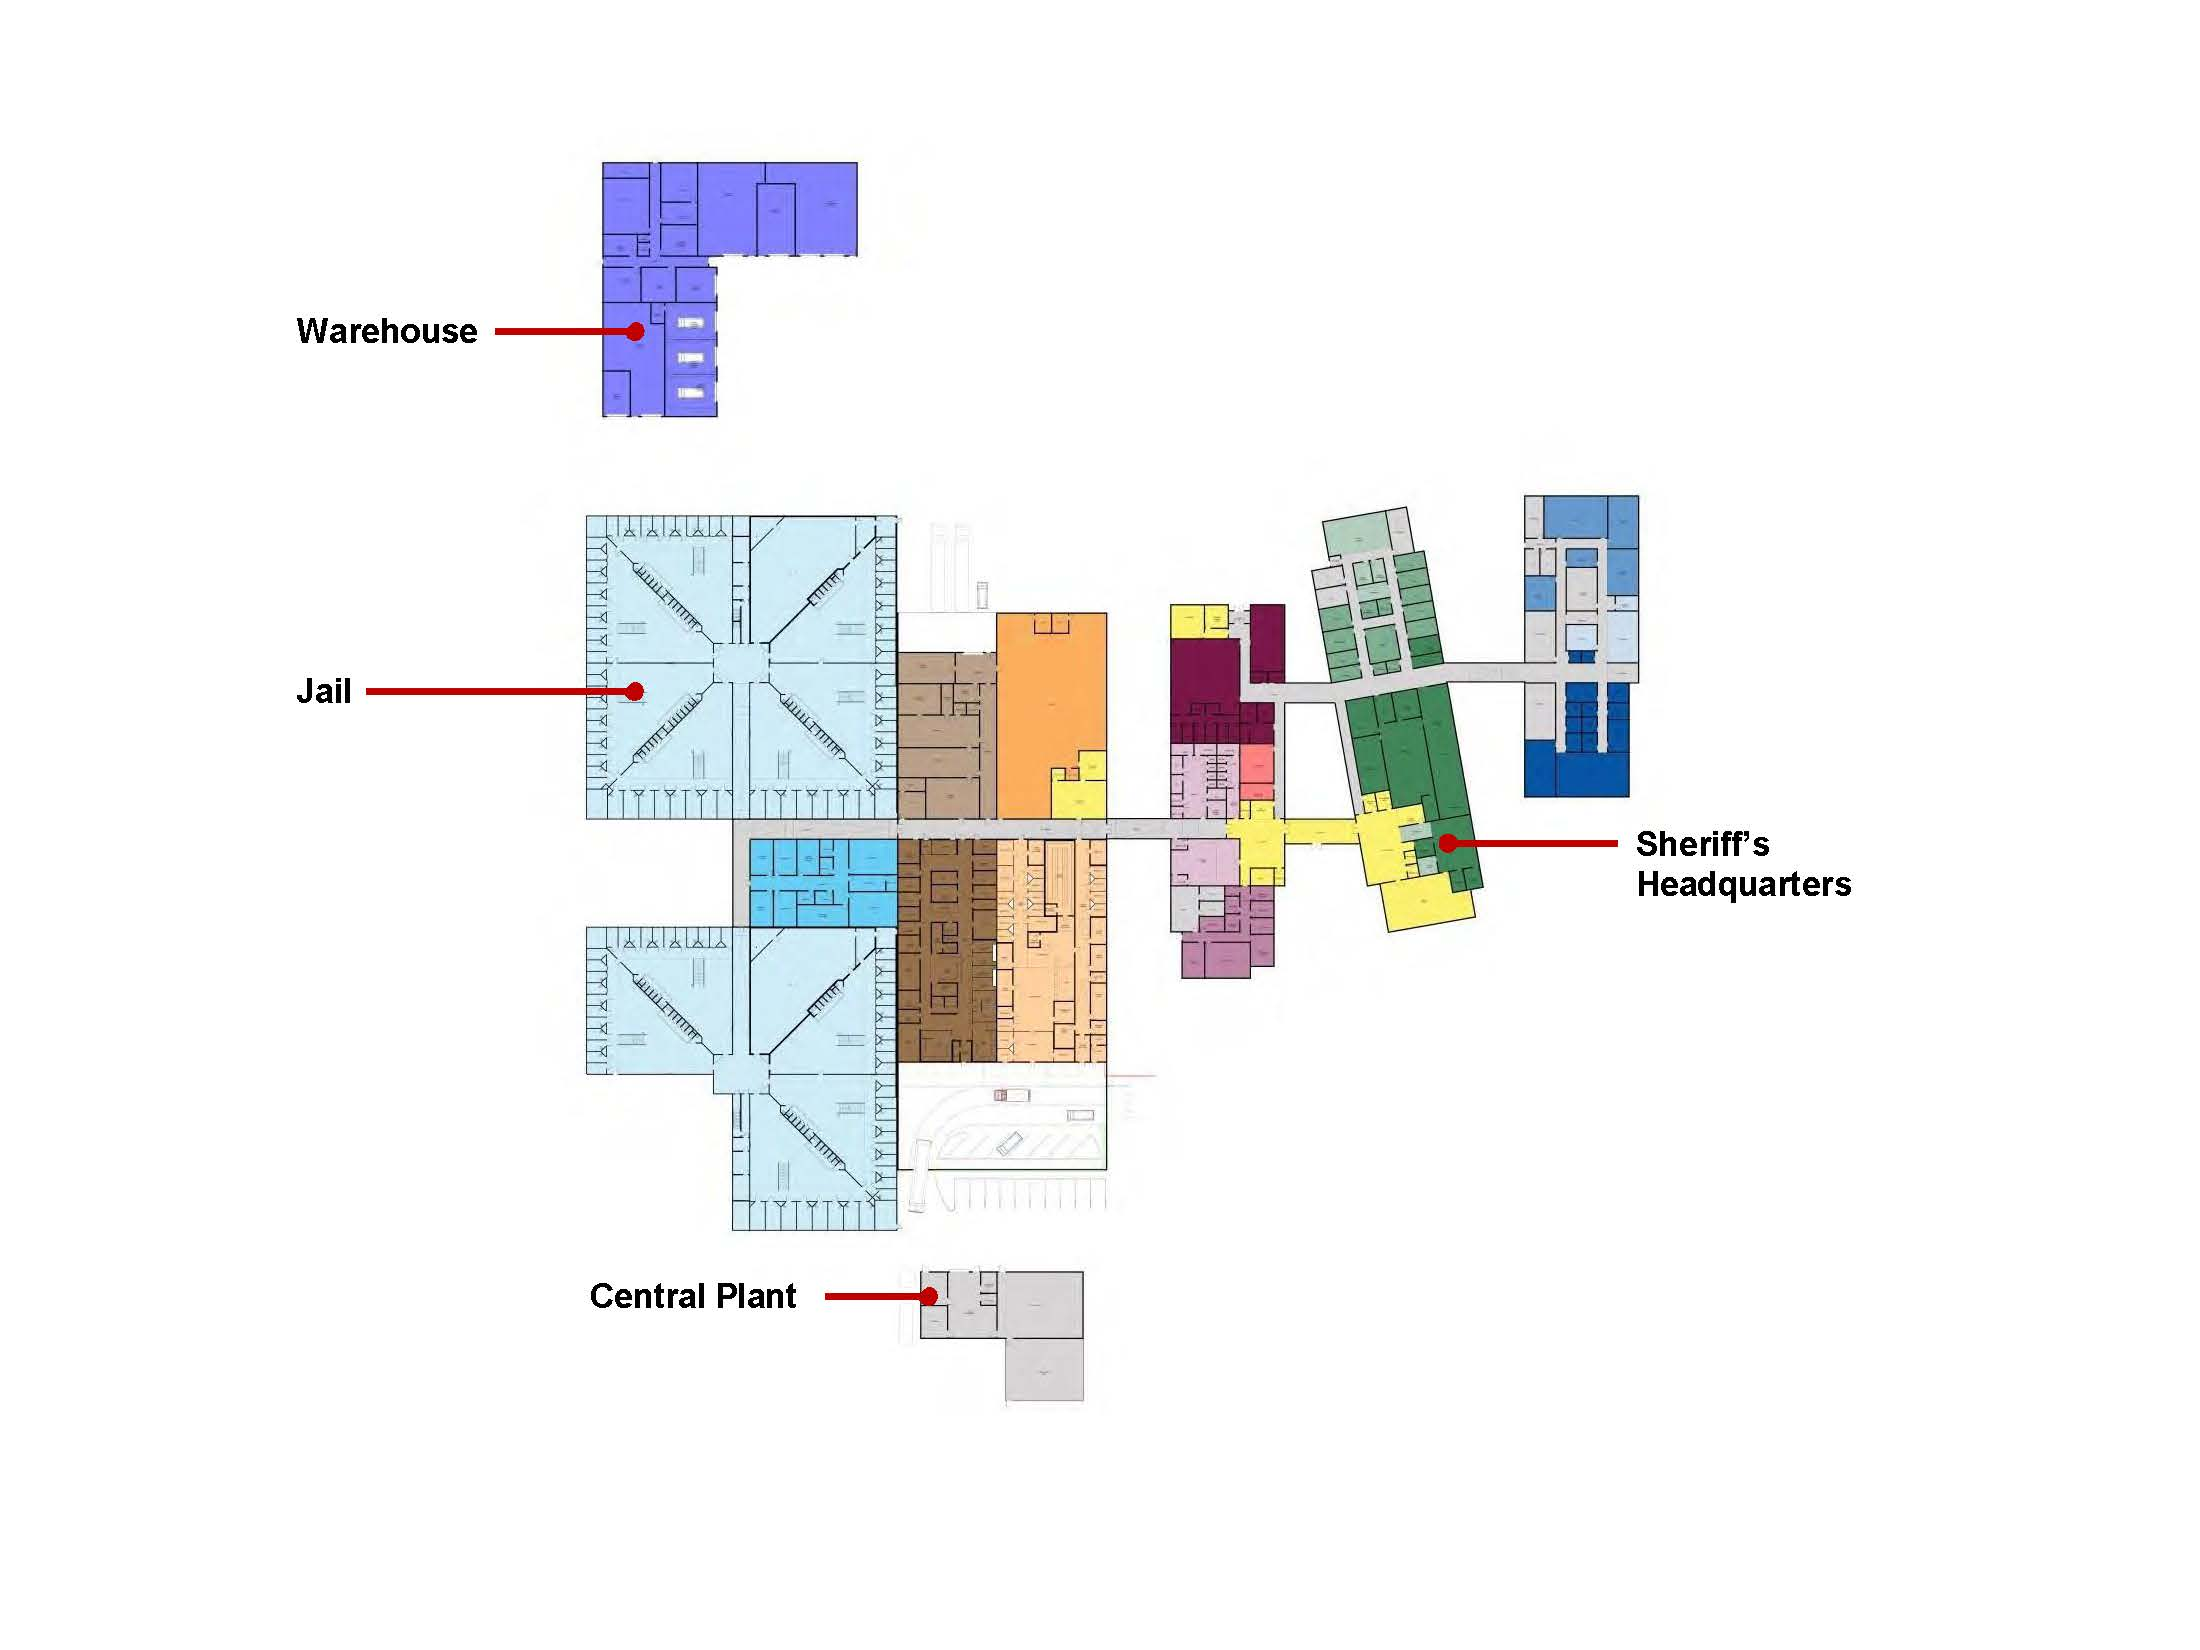 Conceptual Building Layout